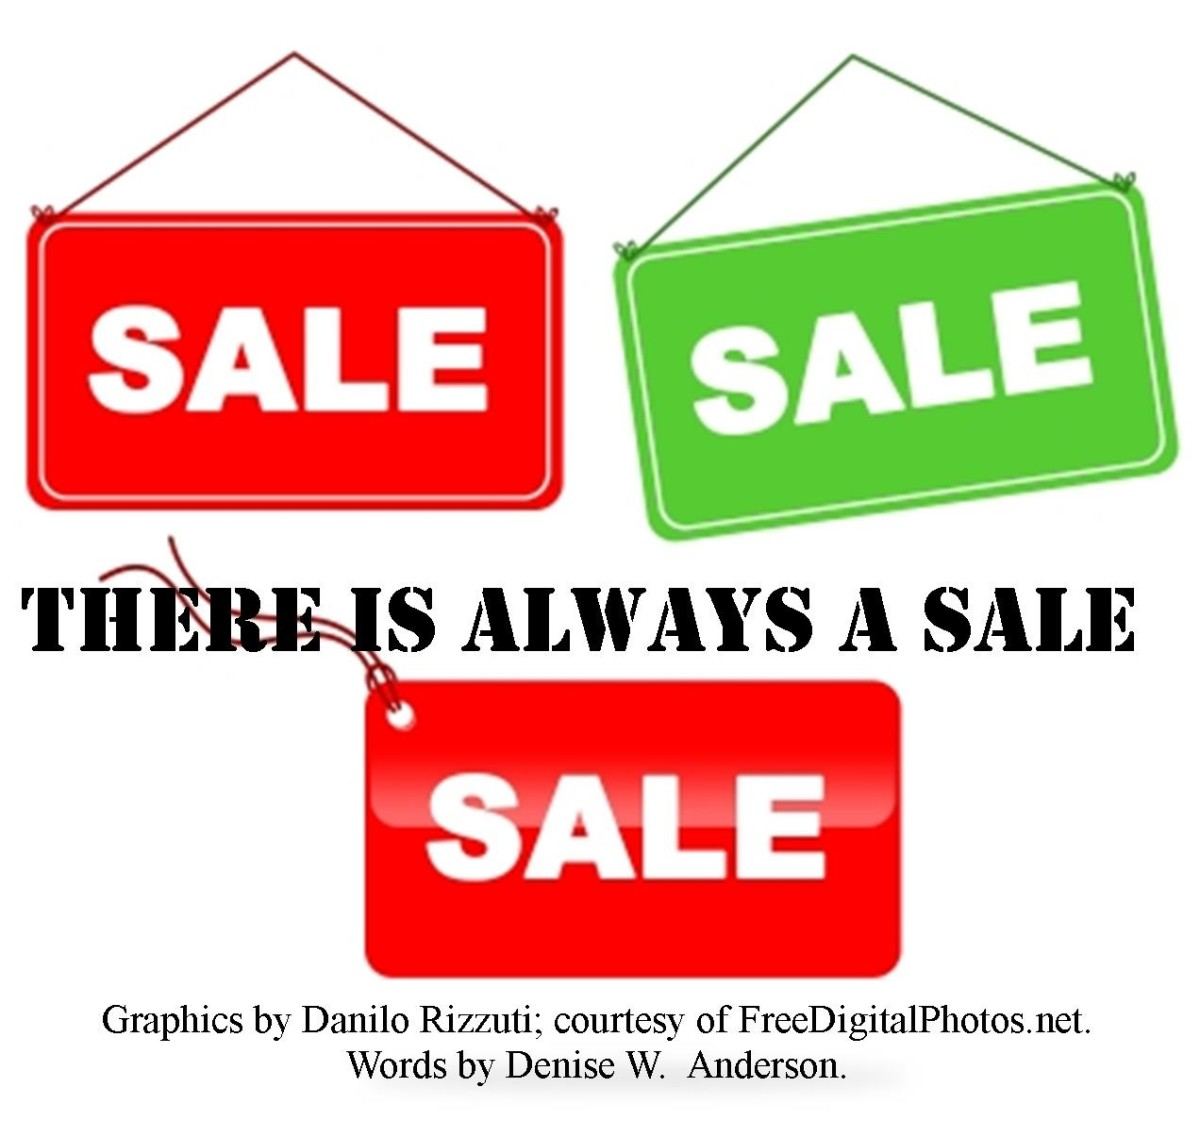 When we realize that there is always a sale, we are able to help our children make wise shopping decisions and avoid marketing traps.